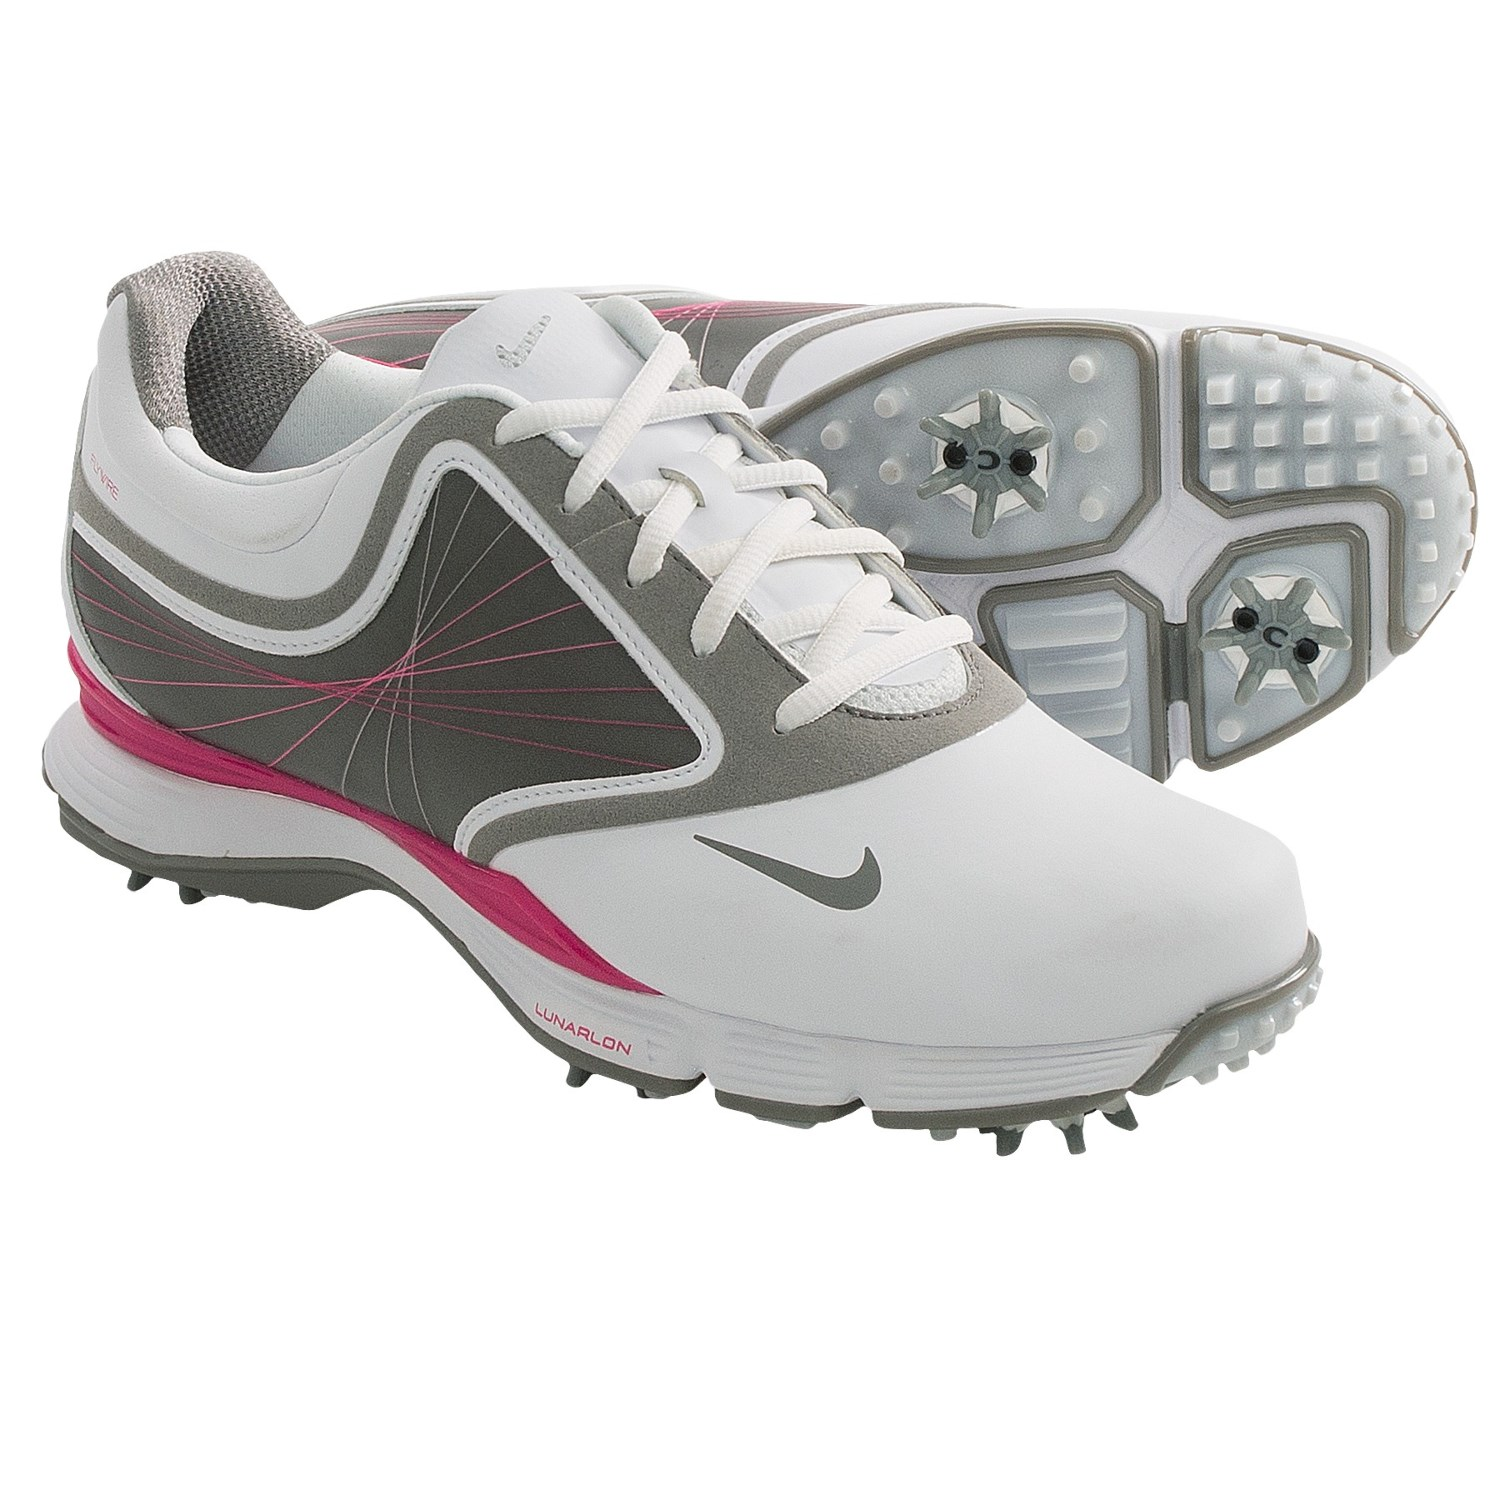 Golf Shoes On Sale At Dick S